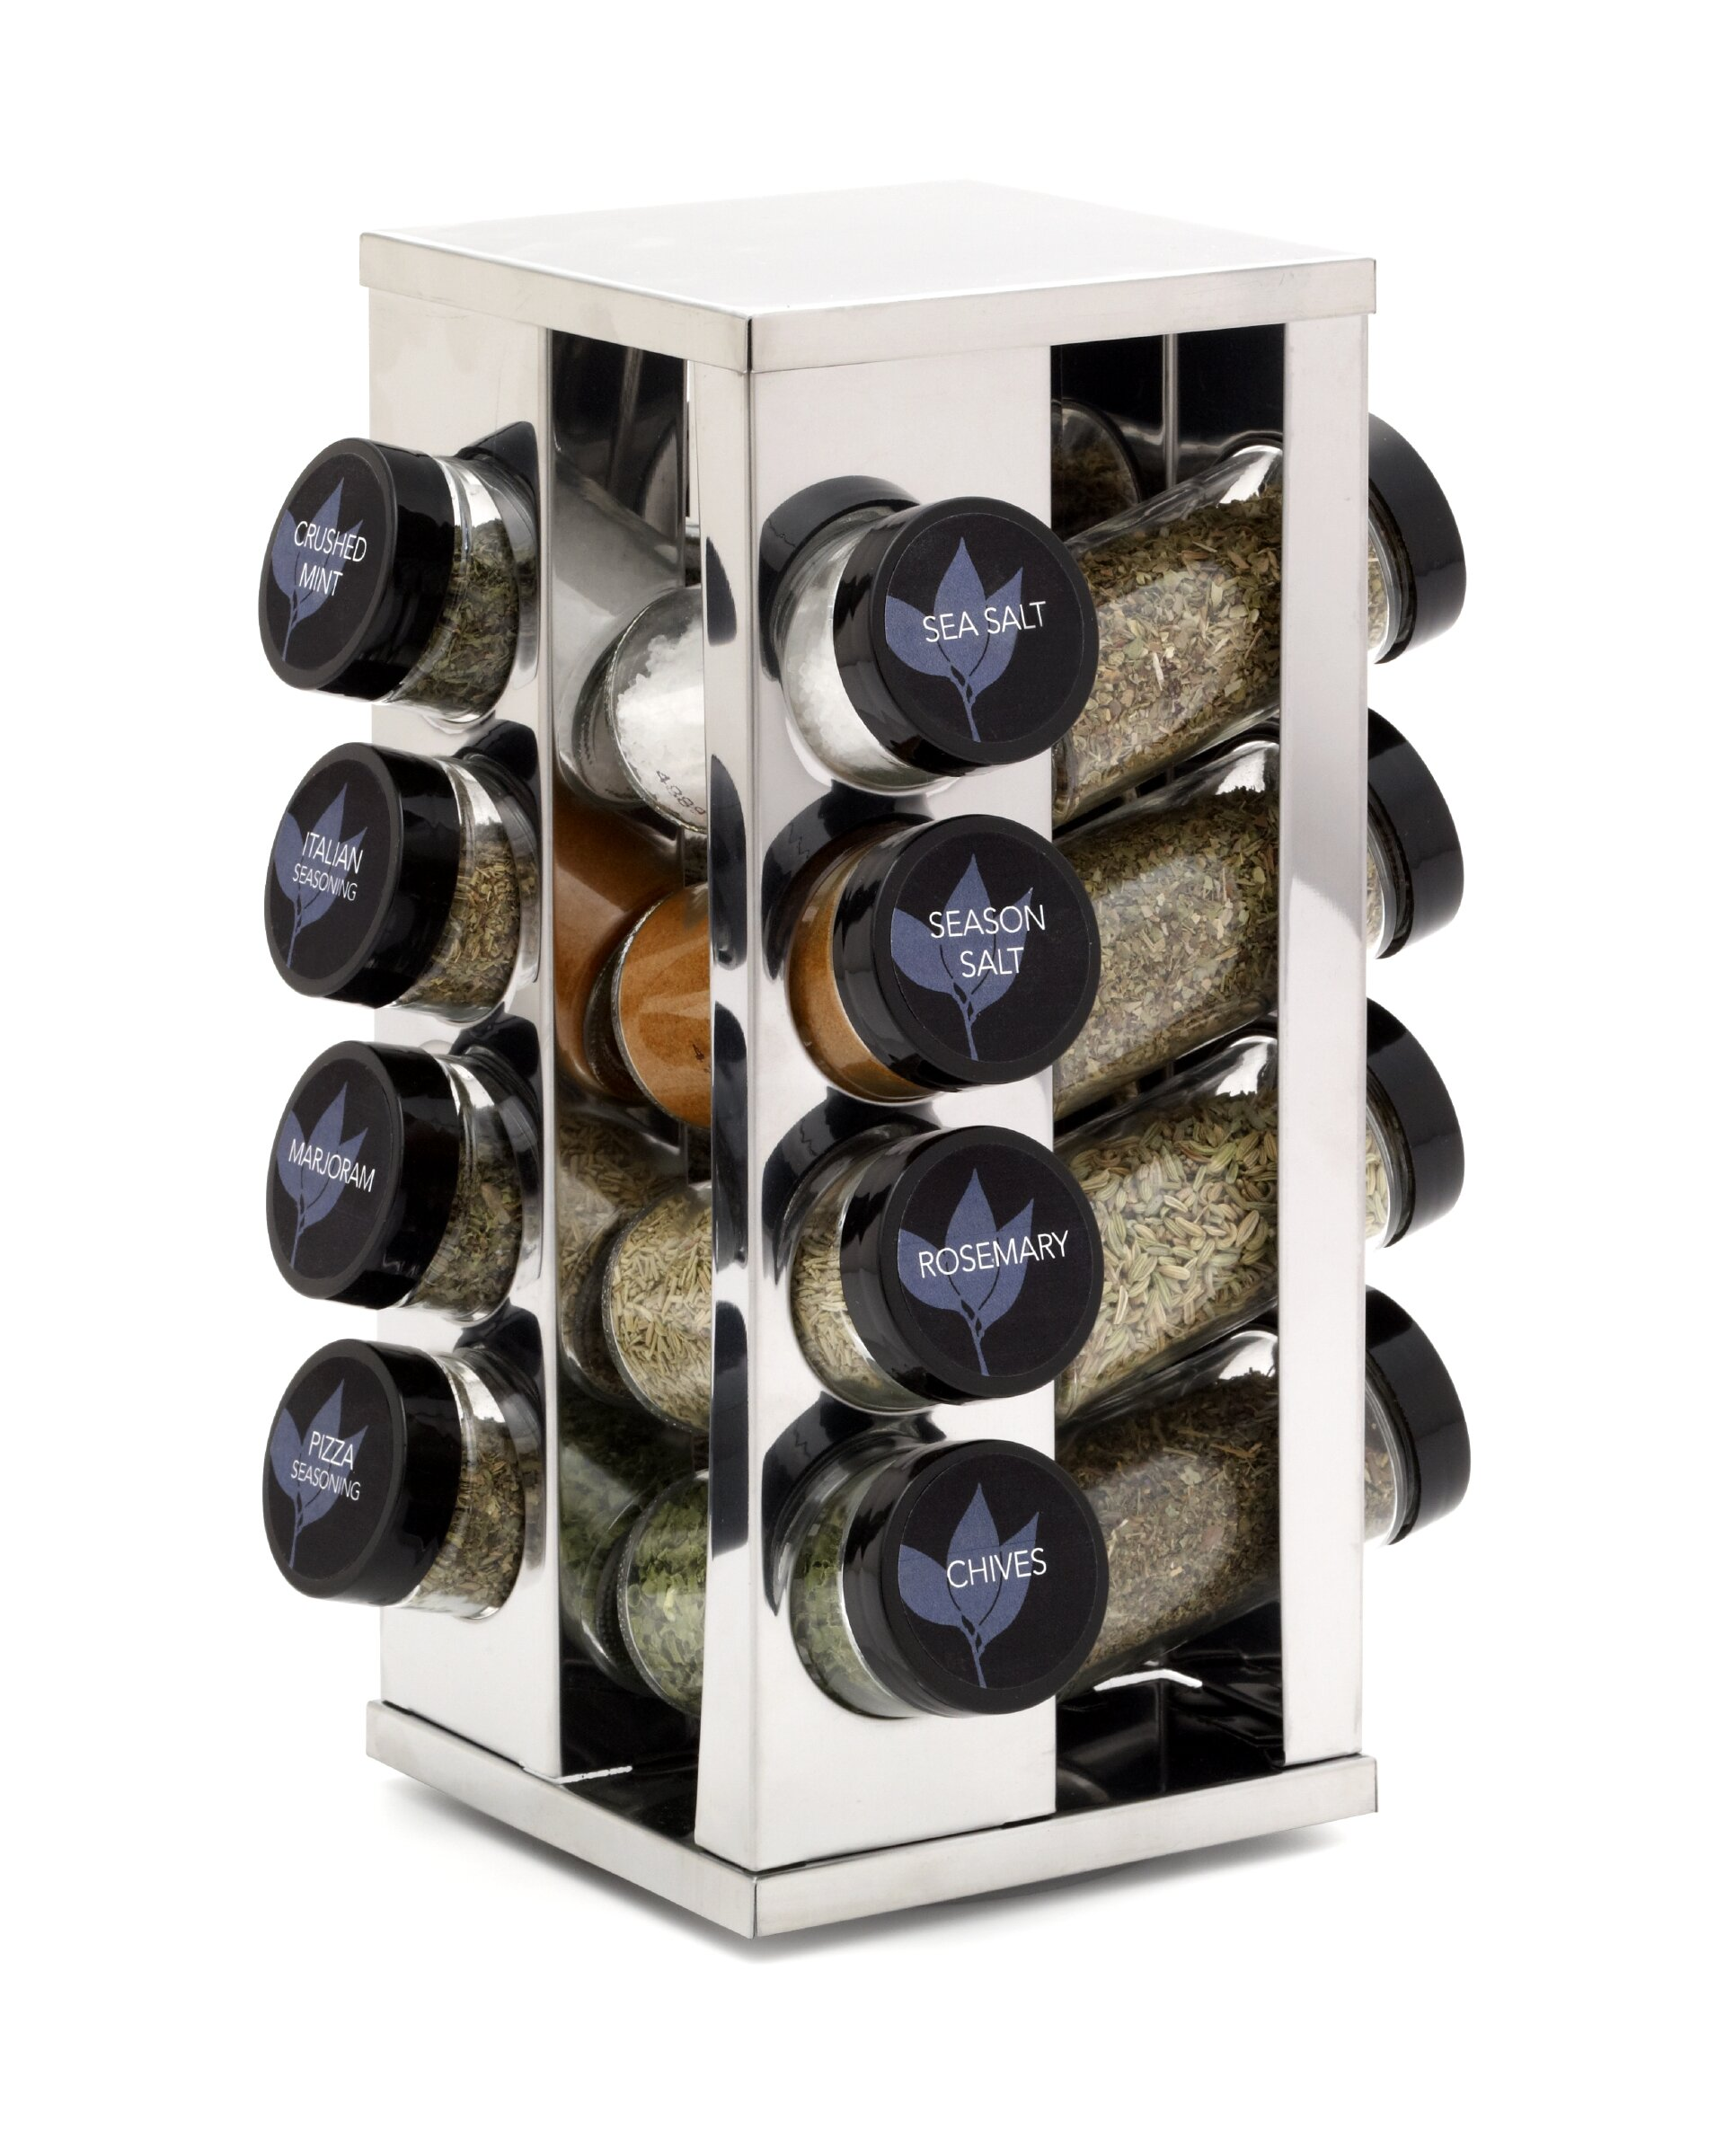 Urban Living Wooden Spice Rack With 6 Spice Jars and a Salt and Pepper Grinder